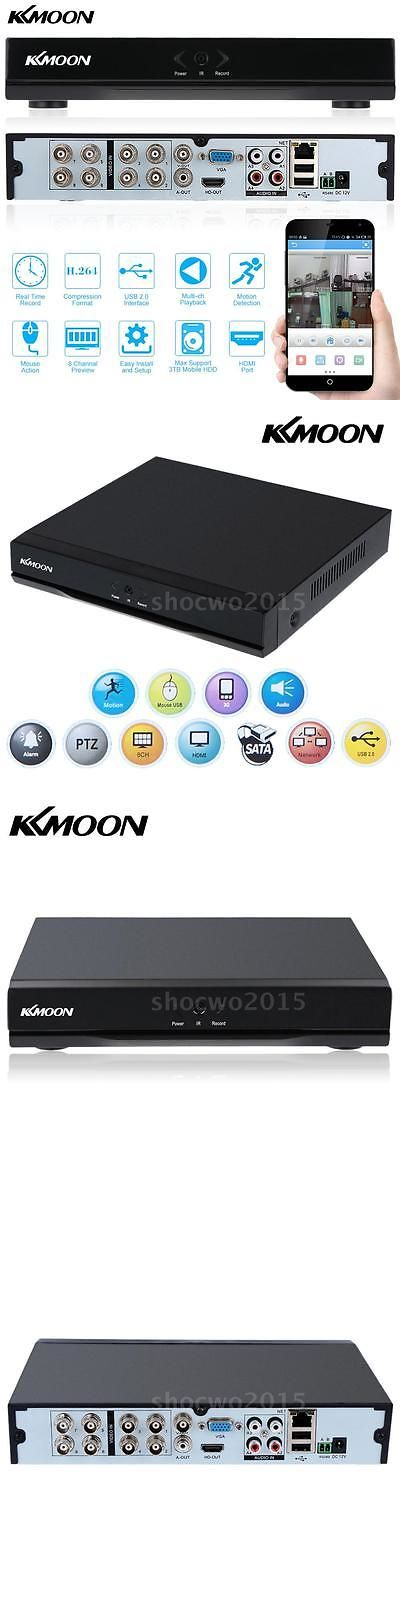 Digital Video Recorders Cards: 8Ch Channel Hdmi H.264 Digital Video Recorder Cctv Security System Us Stock 38Yn BUY IT NOW ONLY: $35.46